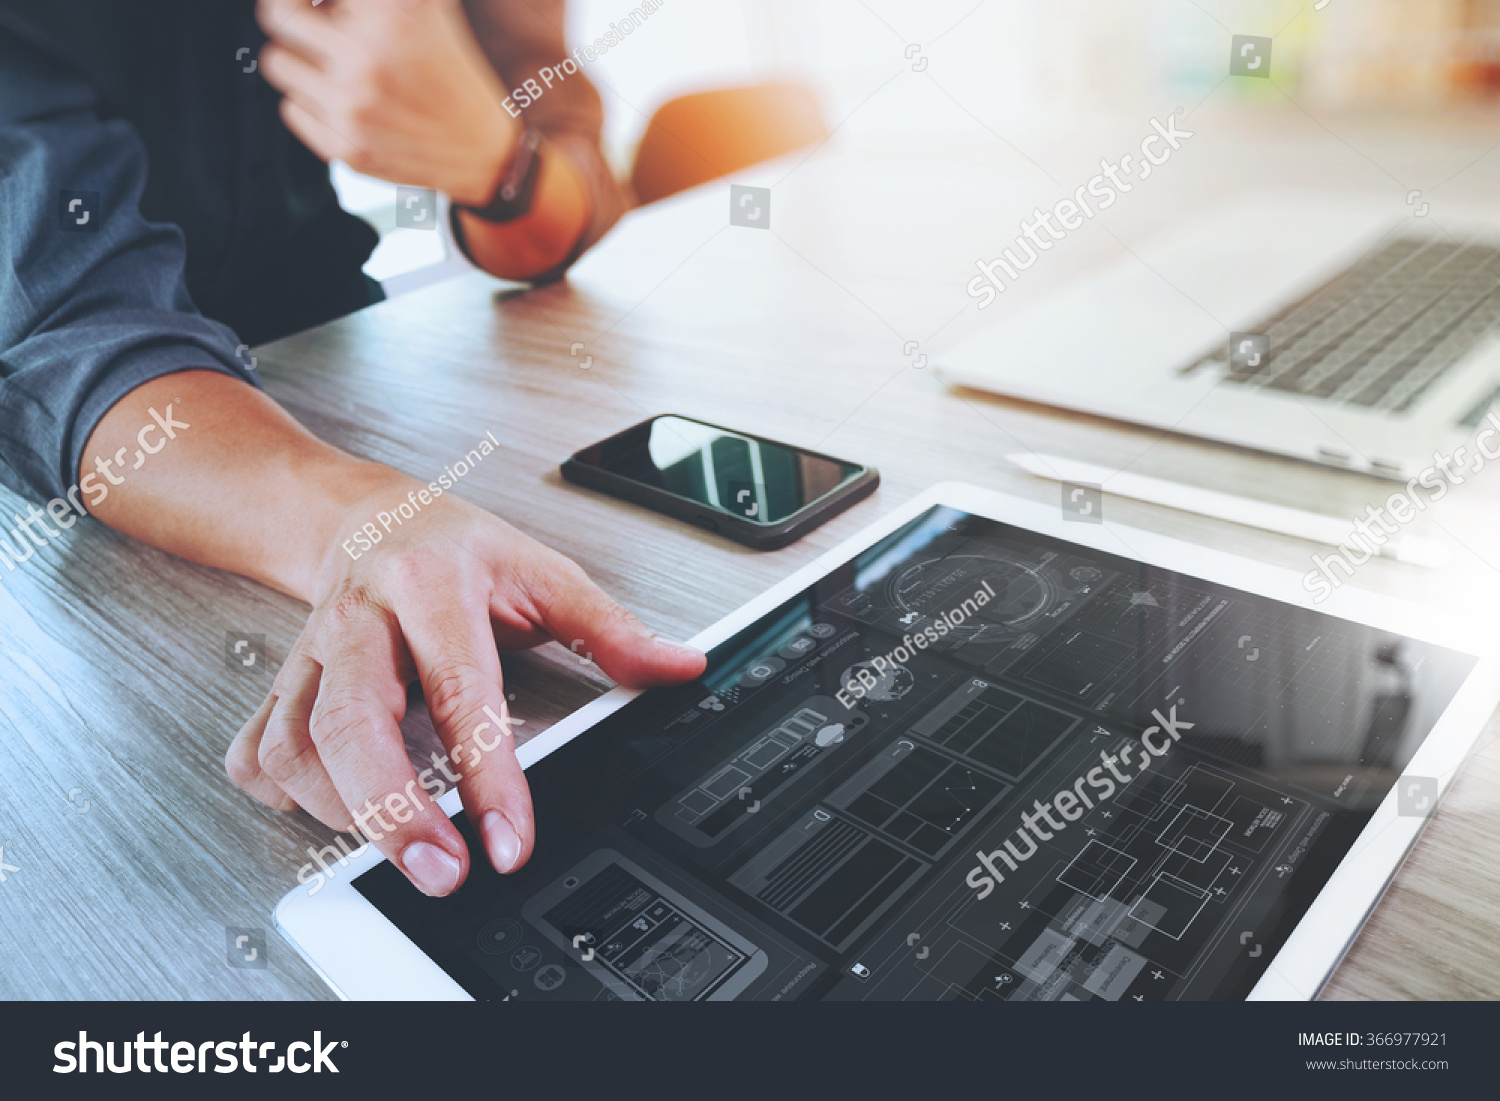 how to find work as a graphic designer